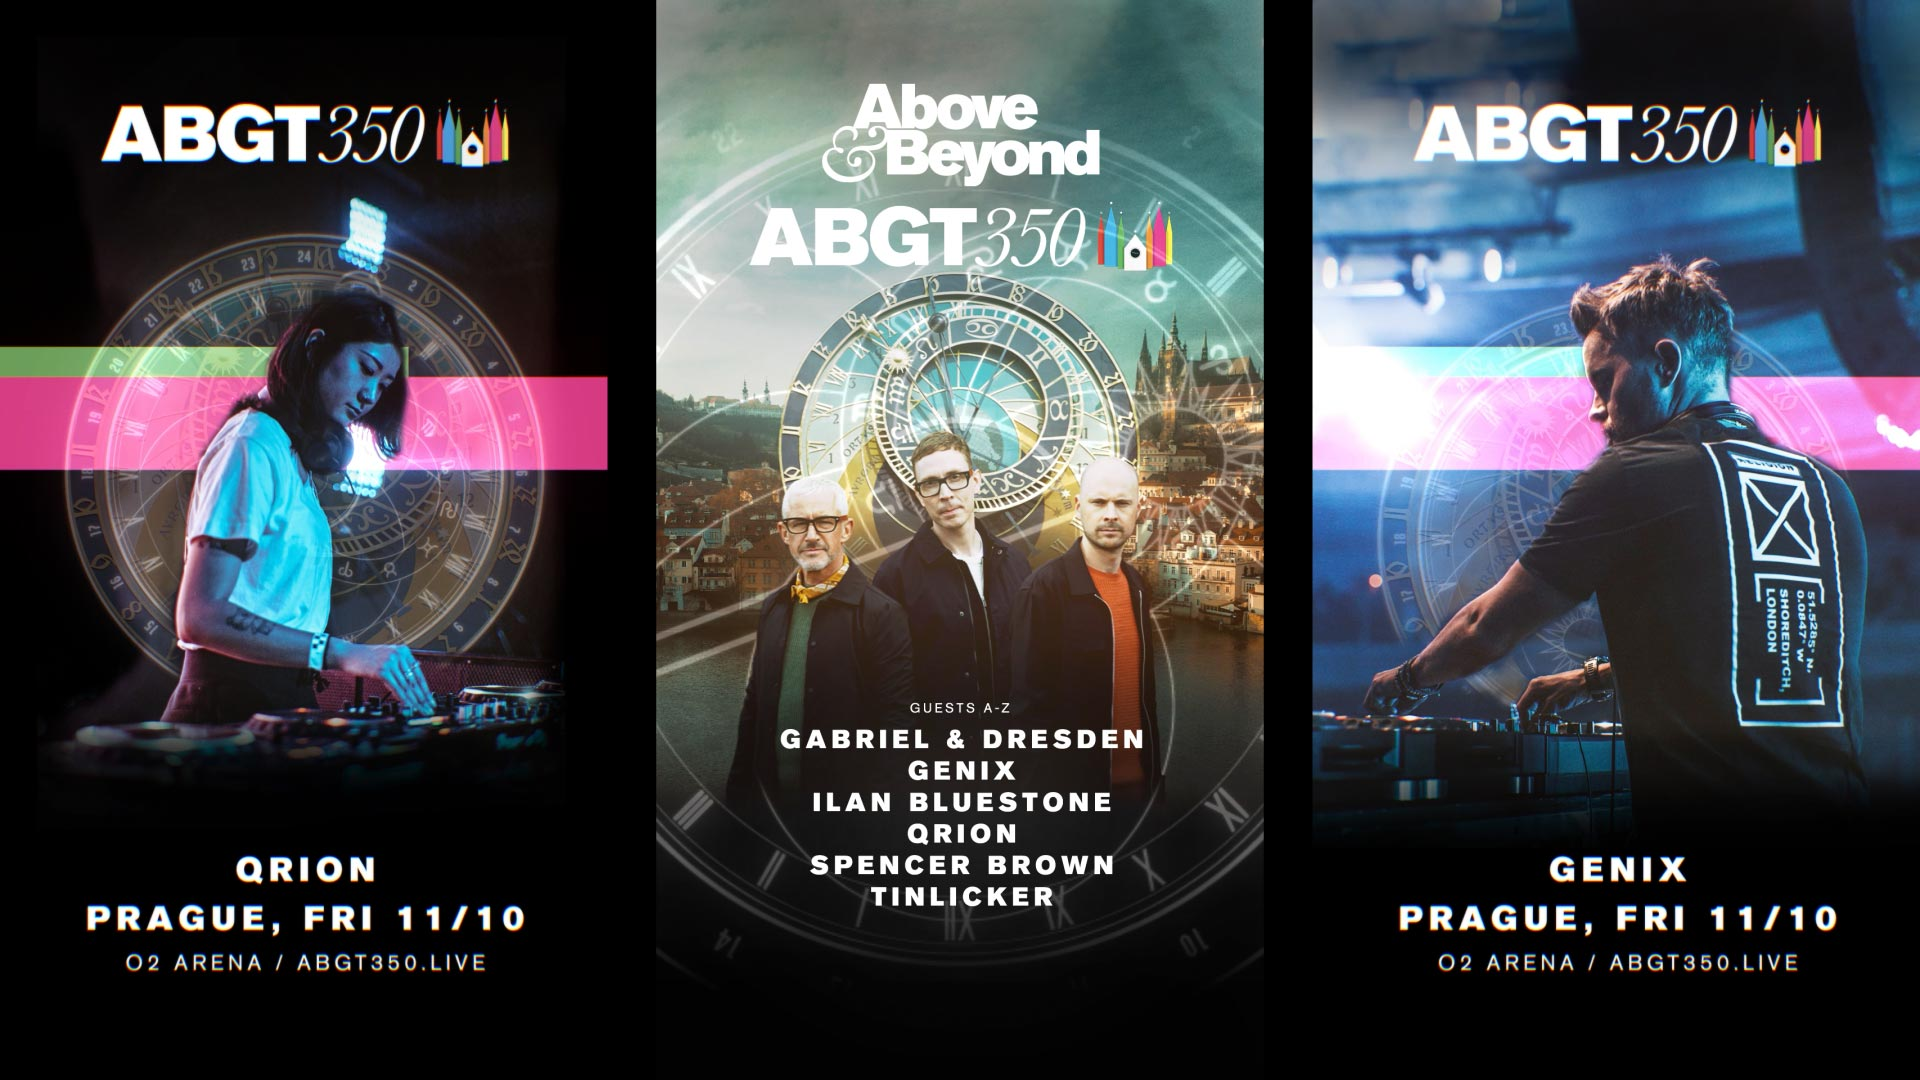 ABGT350 Event Visuals